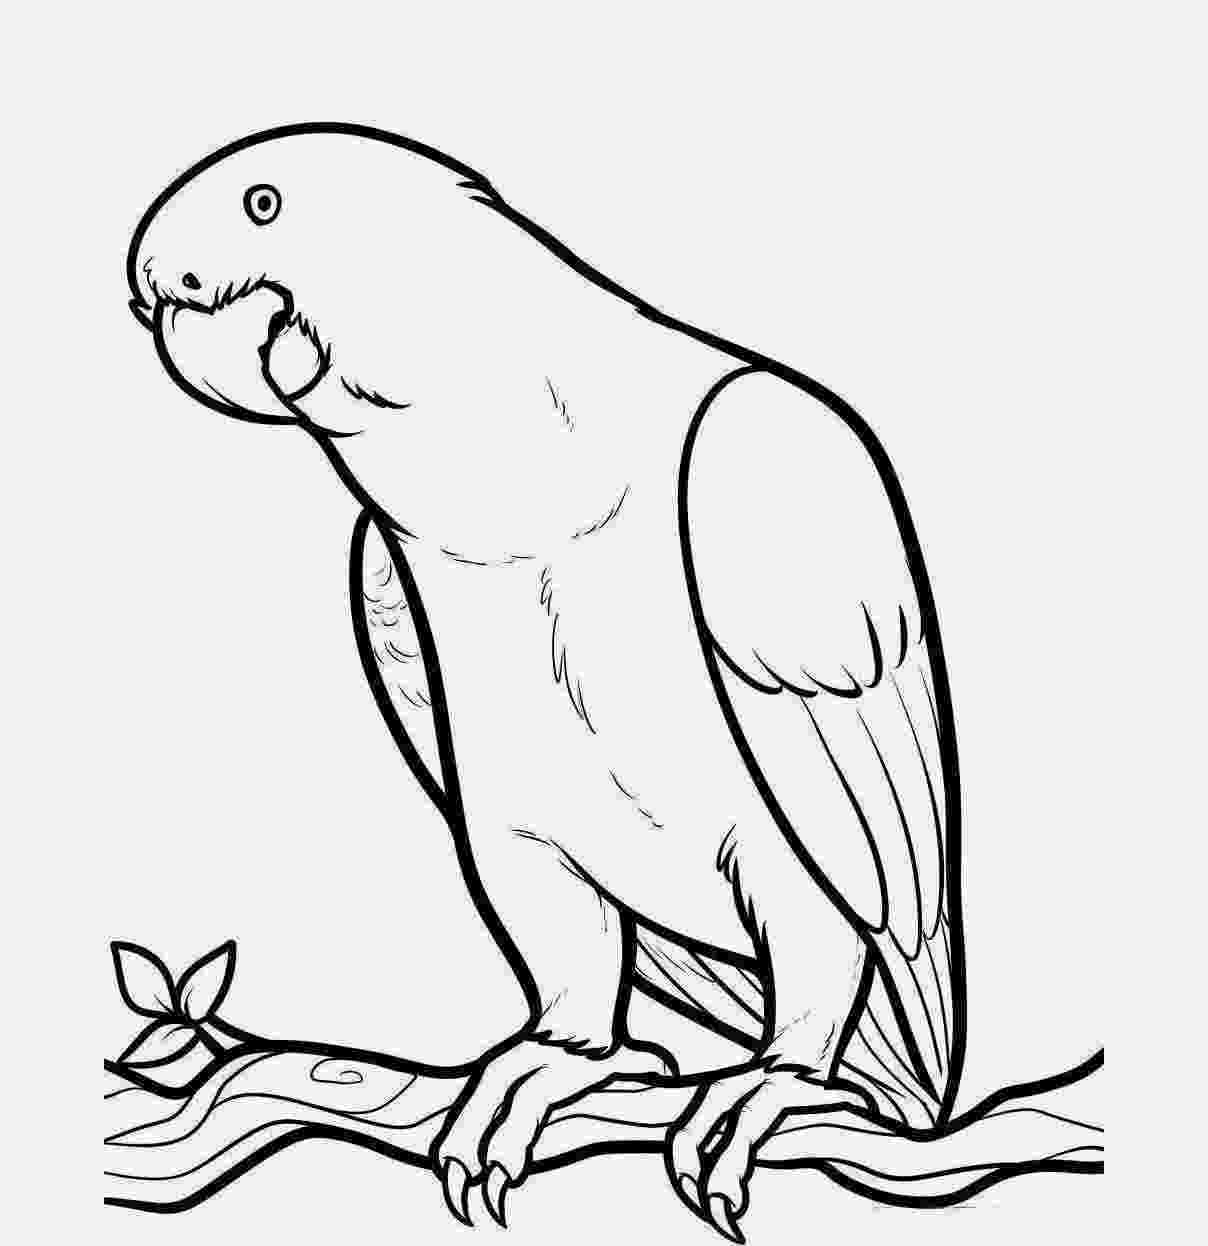 images of birds for colouring blue bird cartoon az coloring pages stiching bird birds colouring images of for